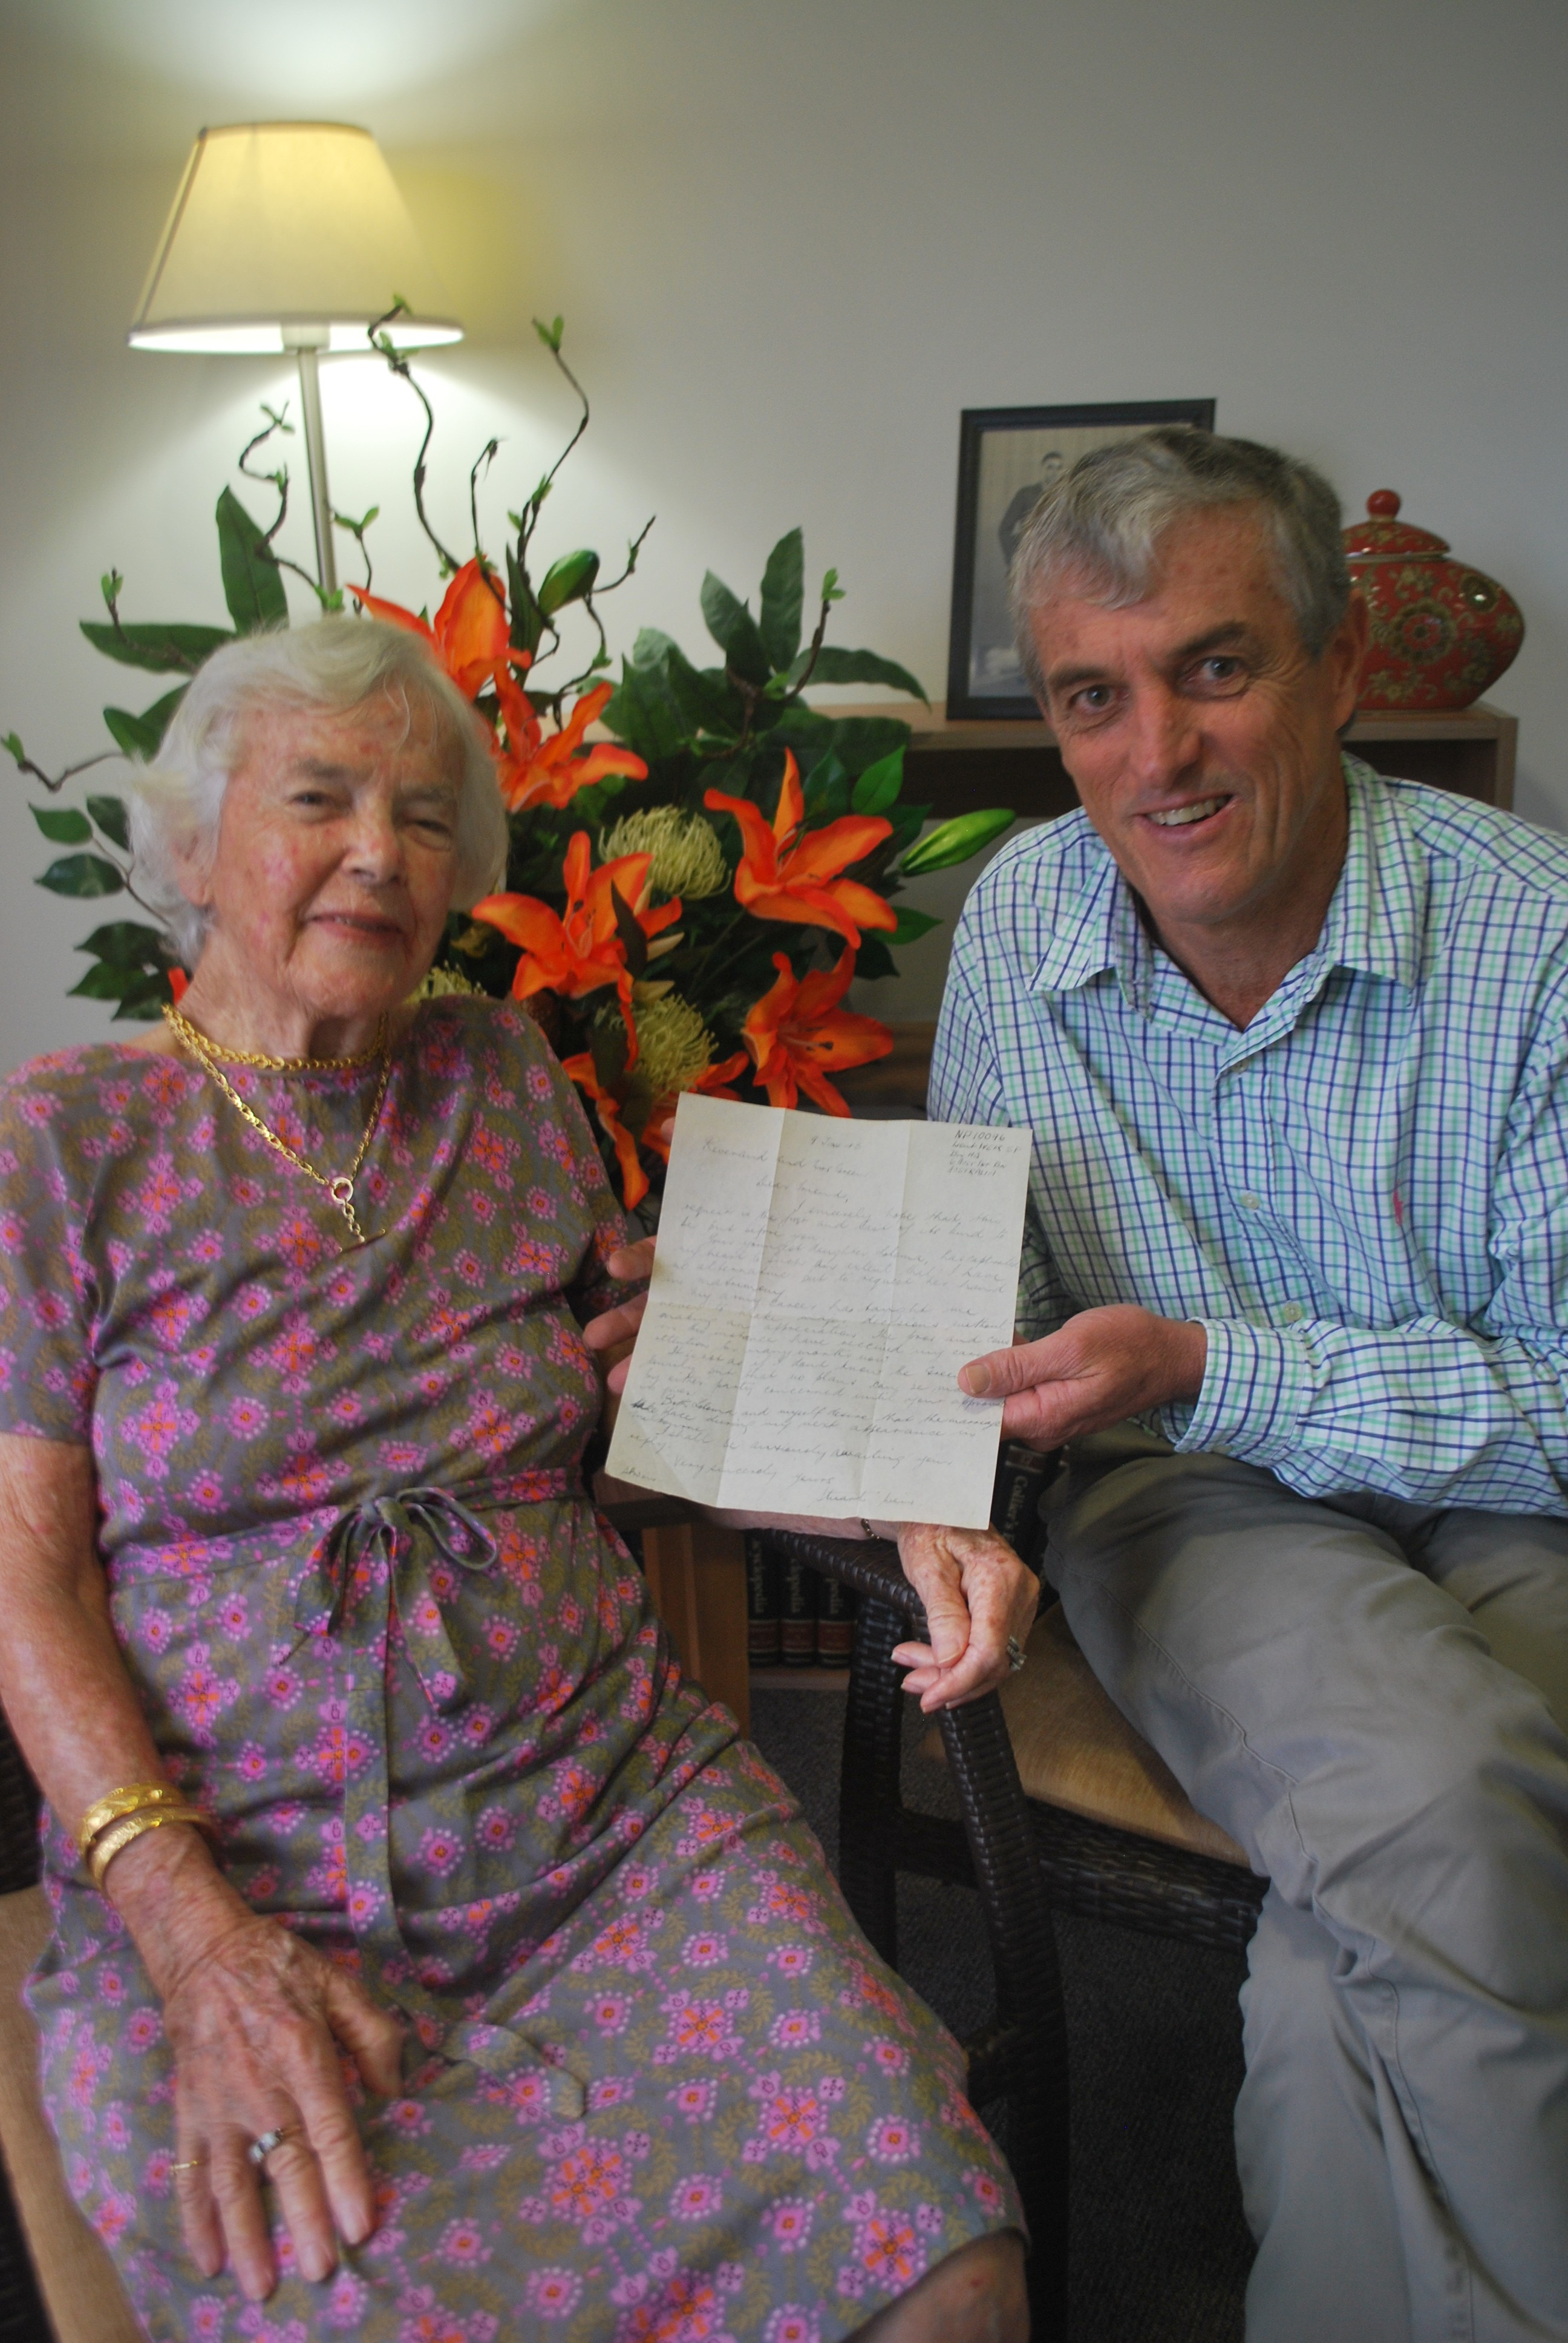 Loloma Weir & Simon Whittle from the Buderim Foundation and the letter -vert